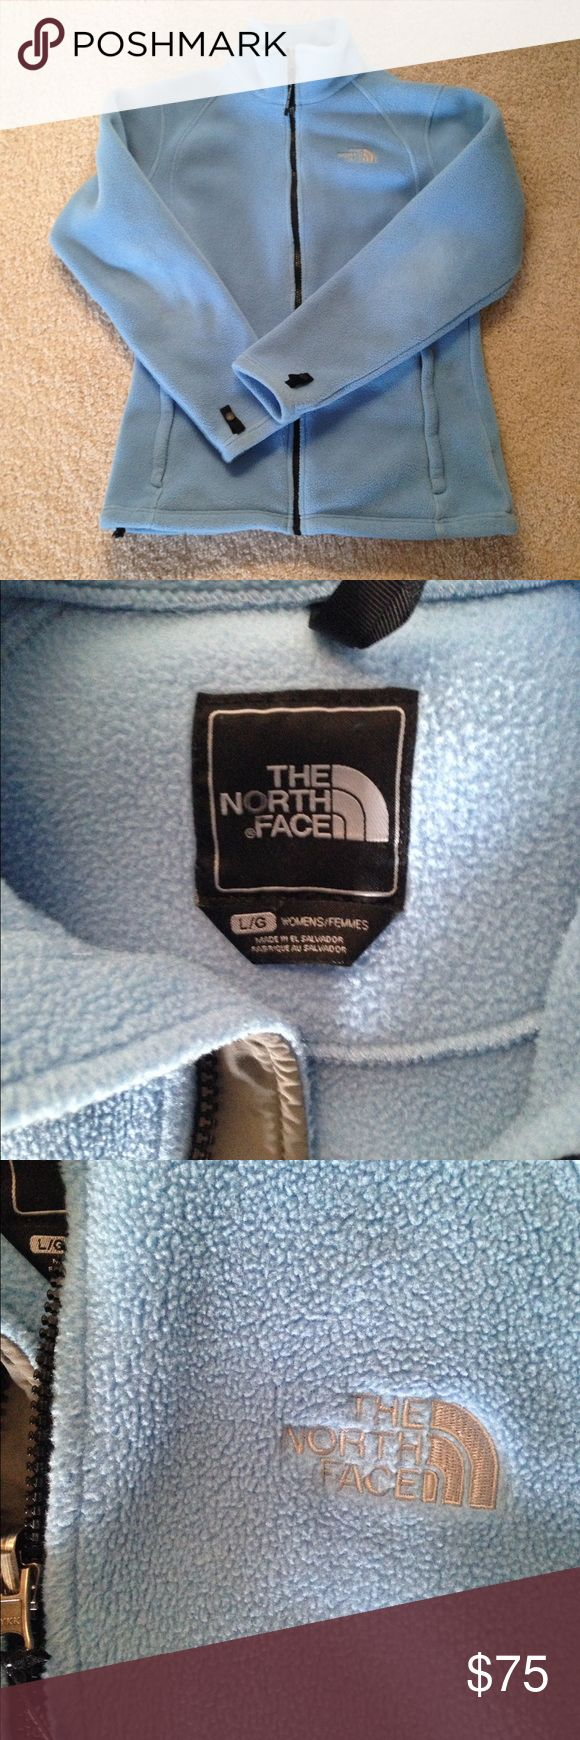 Light Blue North Face Jacket Full-zip North Face jacket. Size L. Good Condition! 2 front pockets. Light blue color. WILL ACCEPT ALL REASONABLE OFFERS! North Face Jackets & Coats